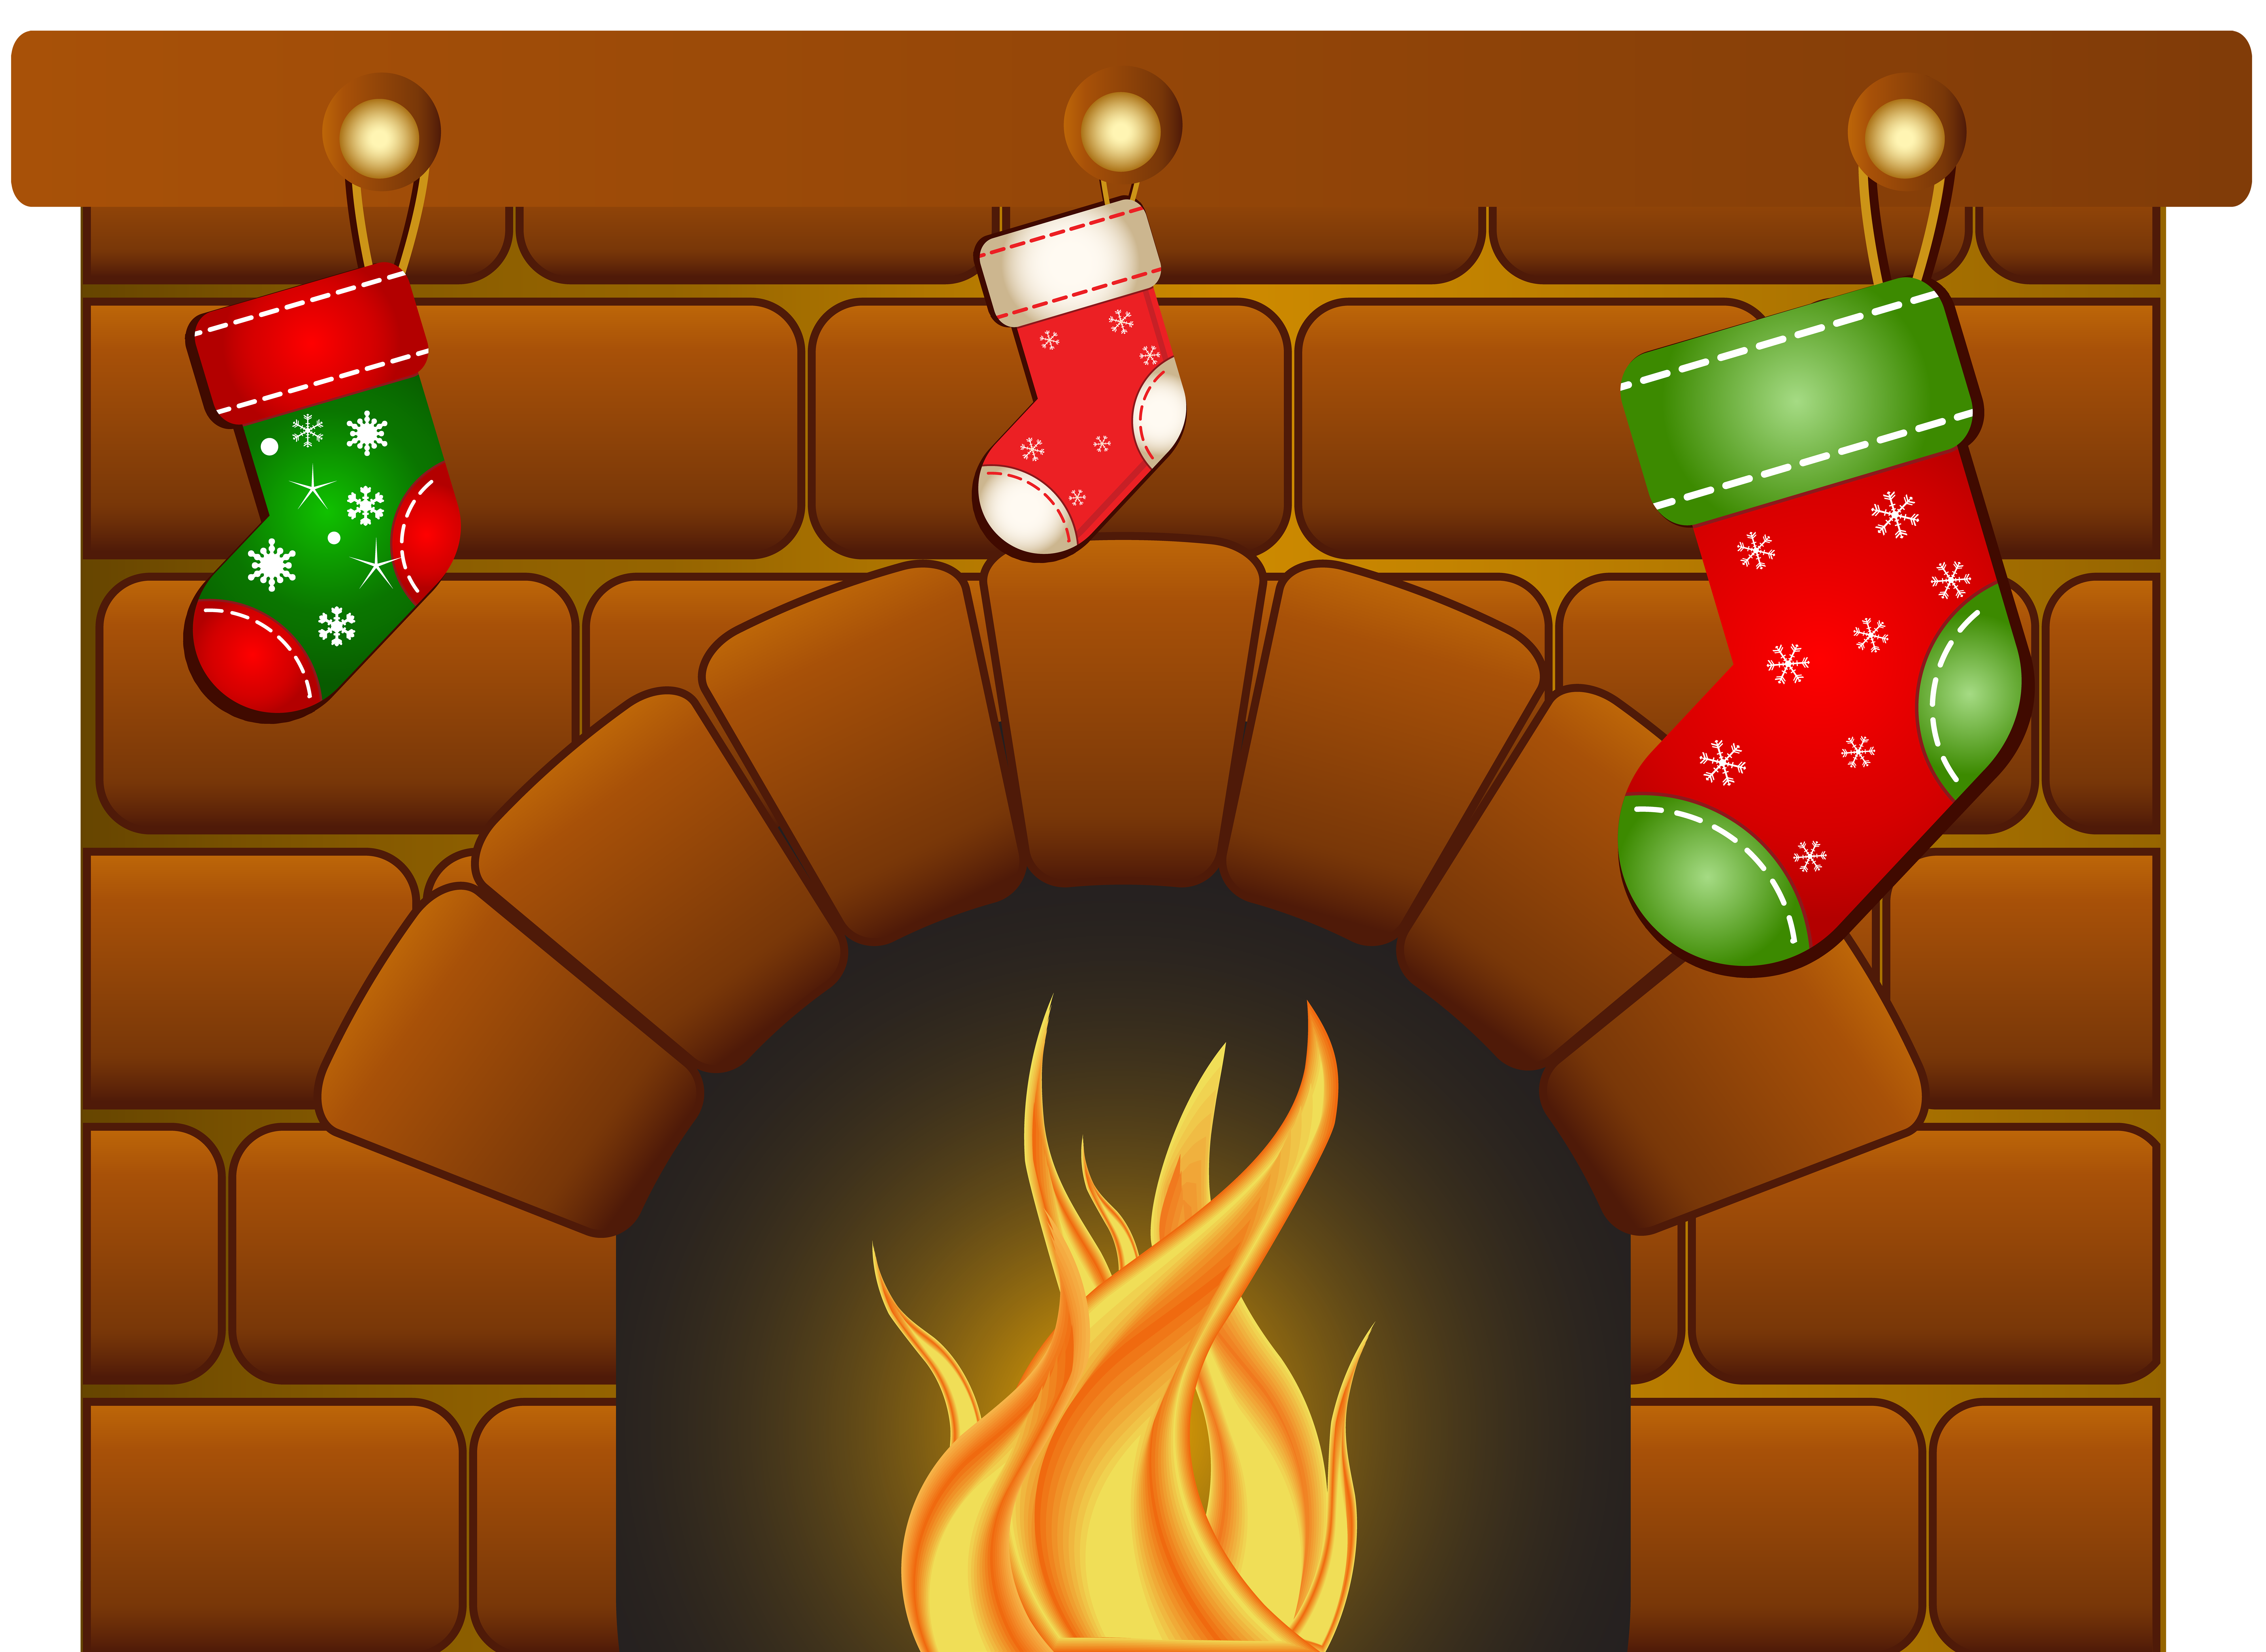 Fireplace clipart. Christmas png clip art